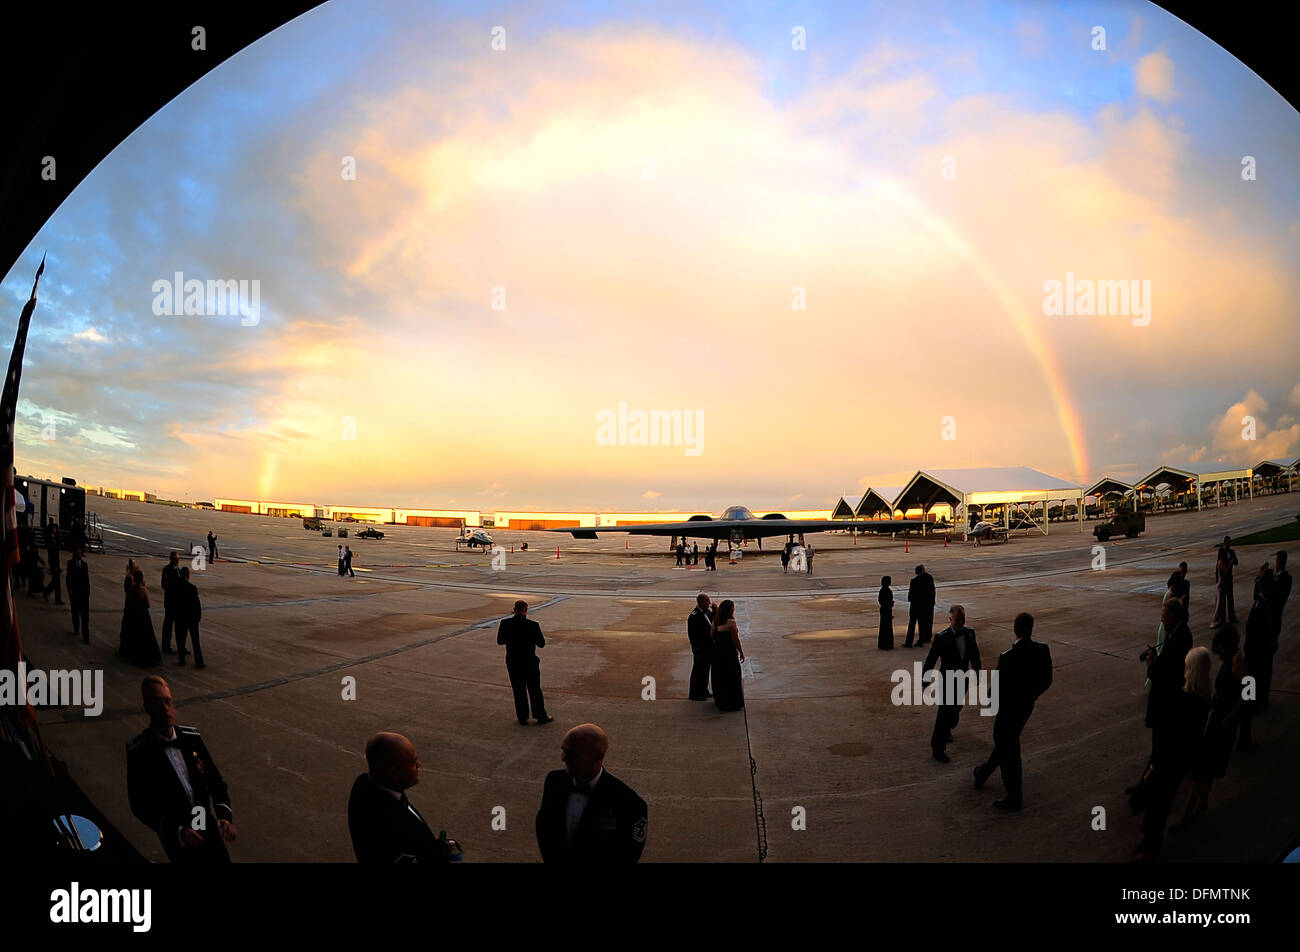 """During the Year of the B-2 Gala at Whiteman Air Force Base, Mo., Sept. 28, 2013, a rainbow made a brief appearance over the """"Spirit of Missouri."""" The gala celebrated the 20th anniversary of the B-2 Spirit stealth bomber, which made its first landing at Wh - Stock Image"""